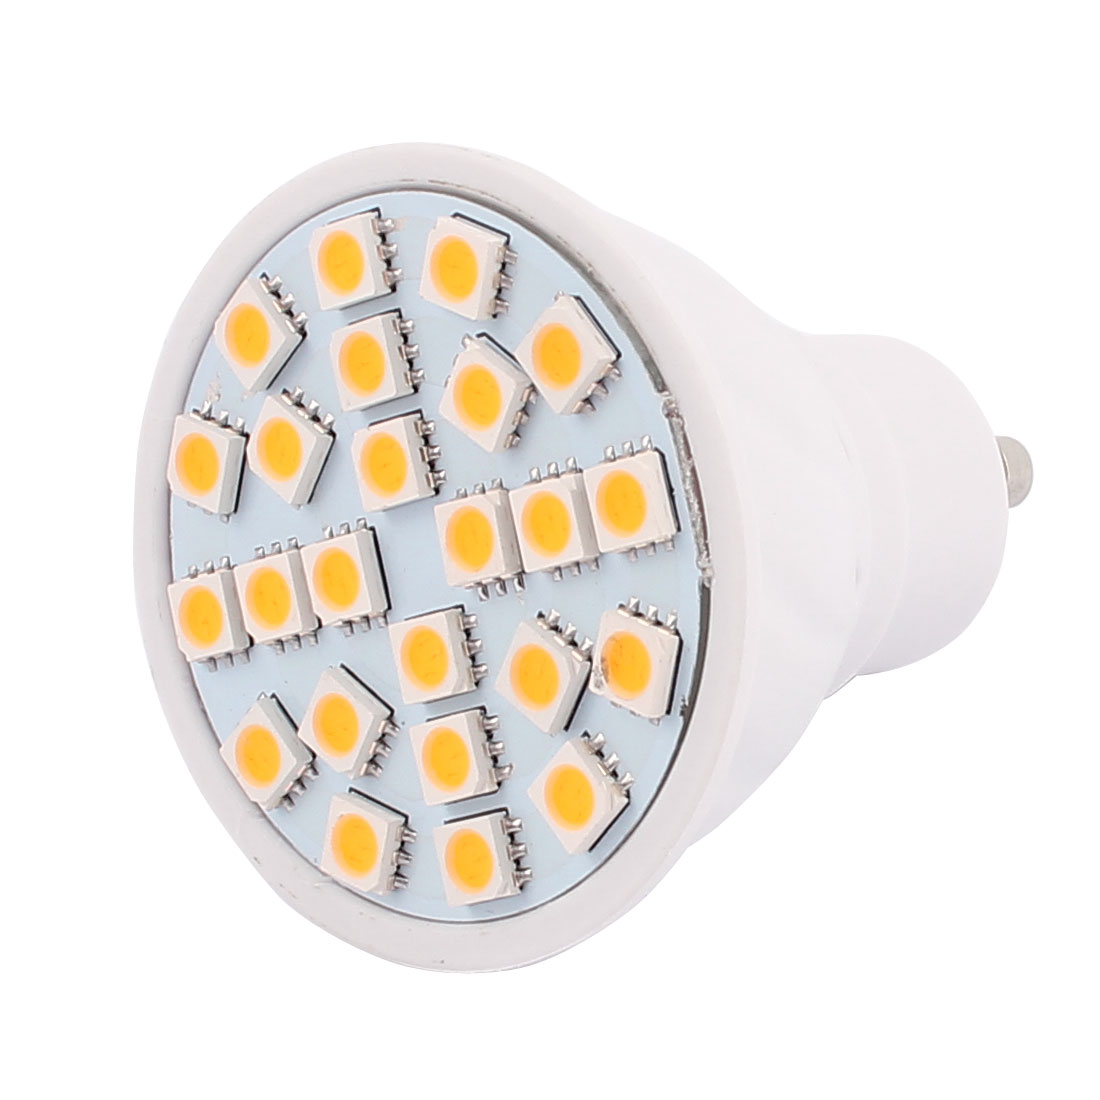 220V GU10 LED Light 3W 5050 SMD 24 LEDs Spotlight Down Lamp Bulb Energy Save Warm White